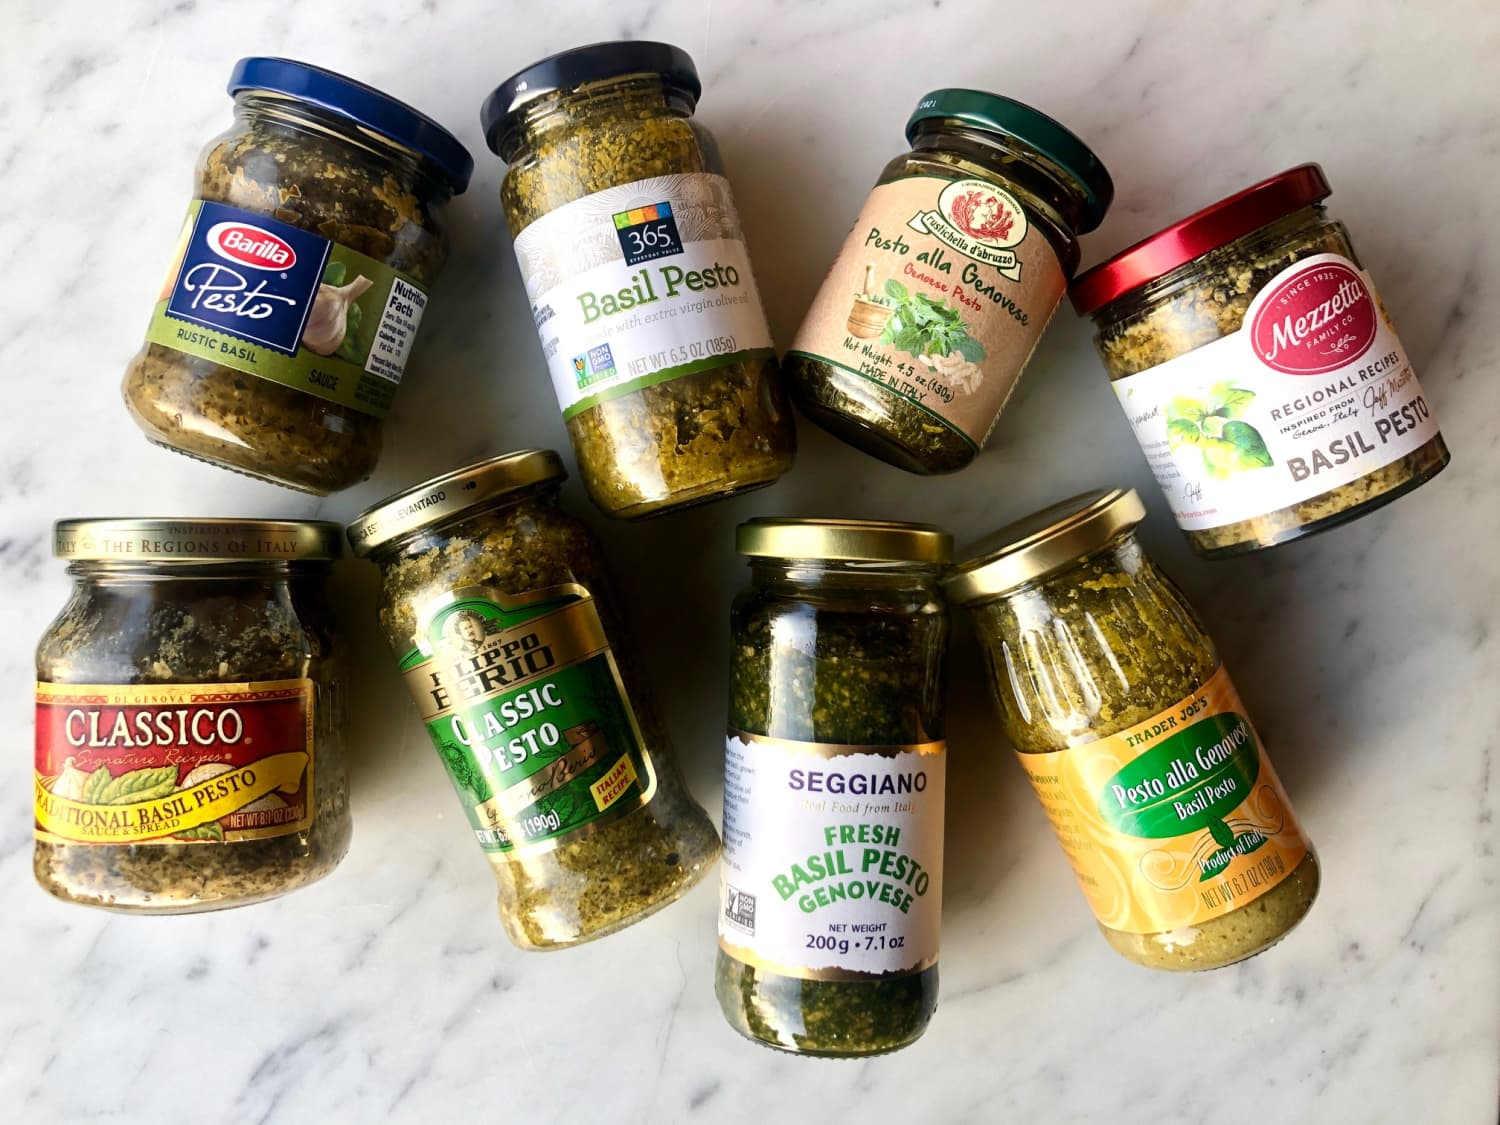 I Tried 8 Jars of Pesto and Now These Are the Only 2 I'll Buy